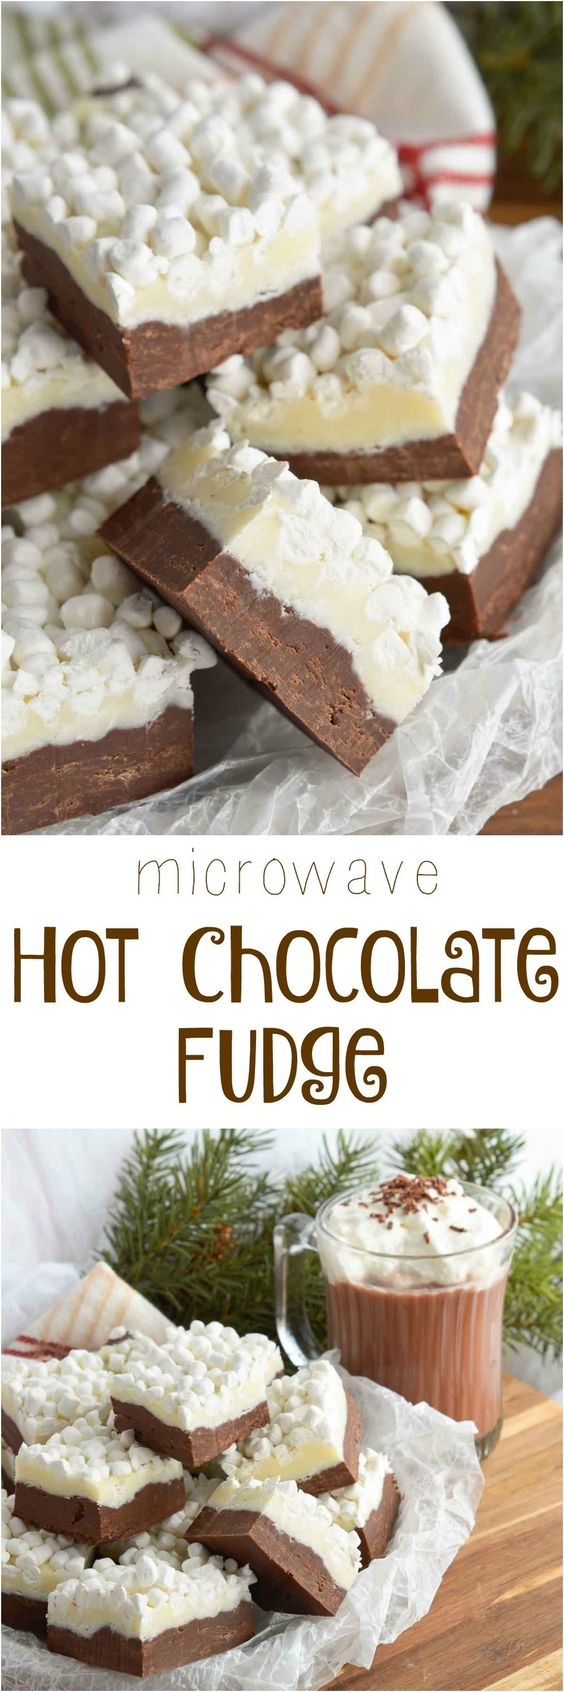 This Hot Chocolate Fudge Recipe brings two of your favorite winter desserts together. Hot cocoa and rich fudge topped with marshmallows! The perfect holiday treat. ad #ShareYourDelight: